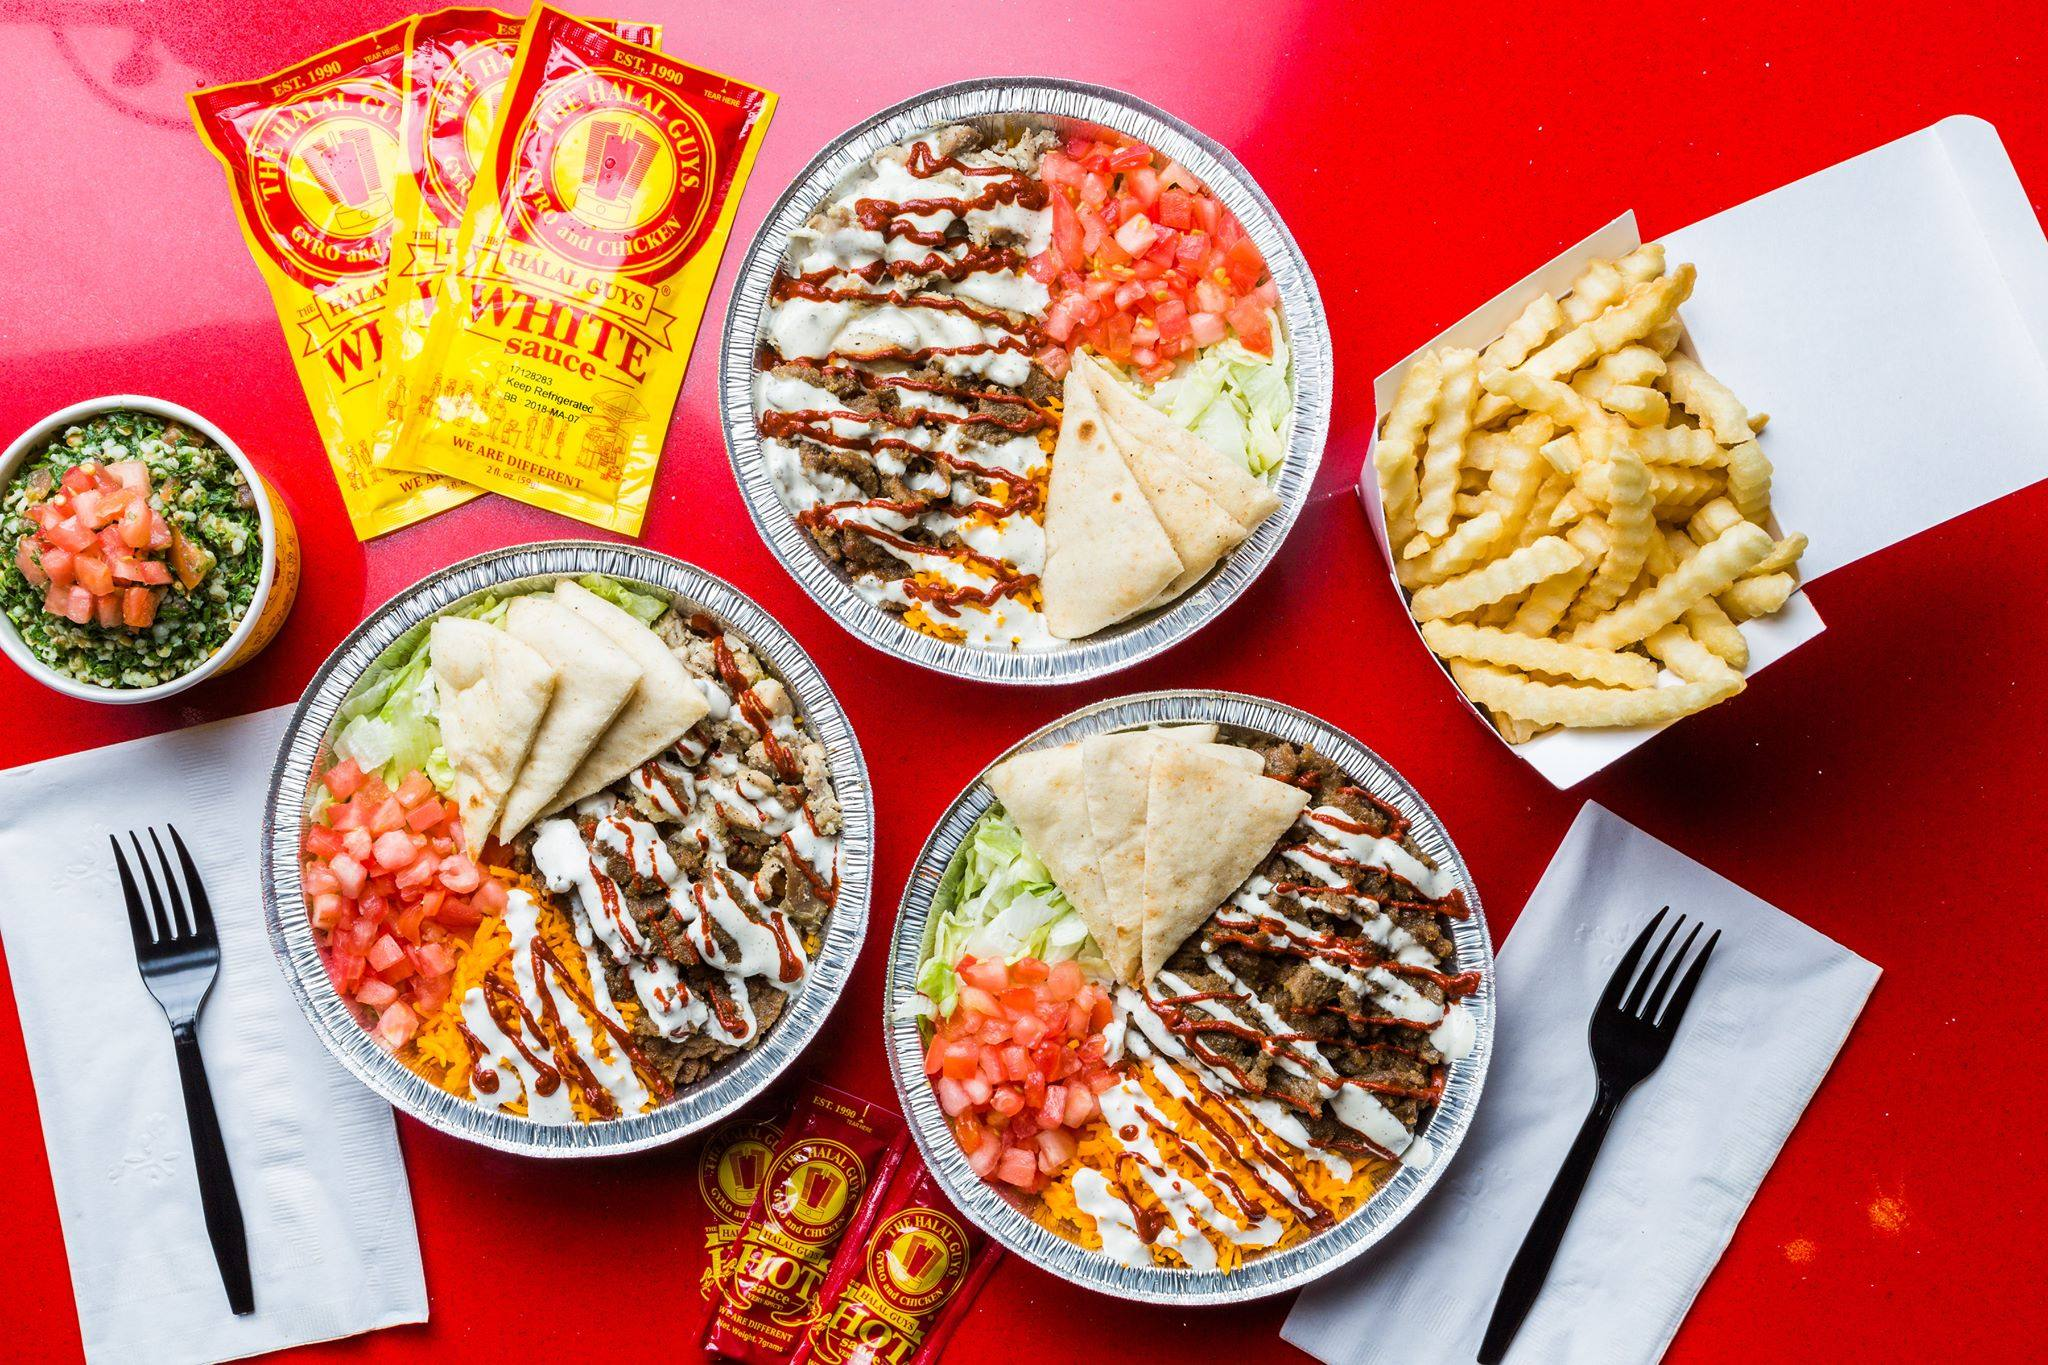 Dishes at Halal Guys in Los Angeles